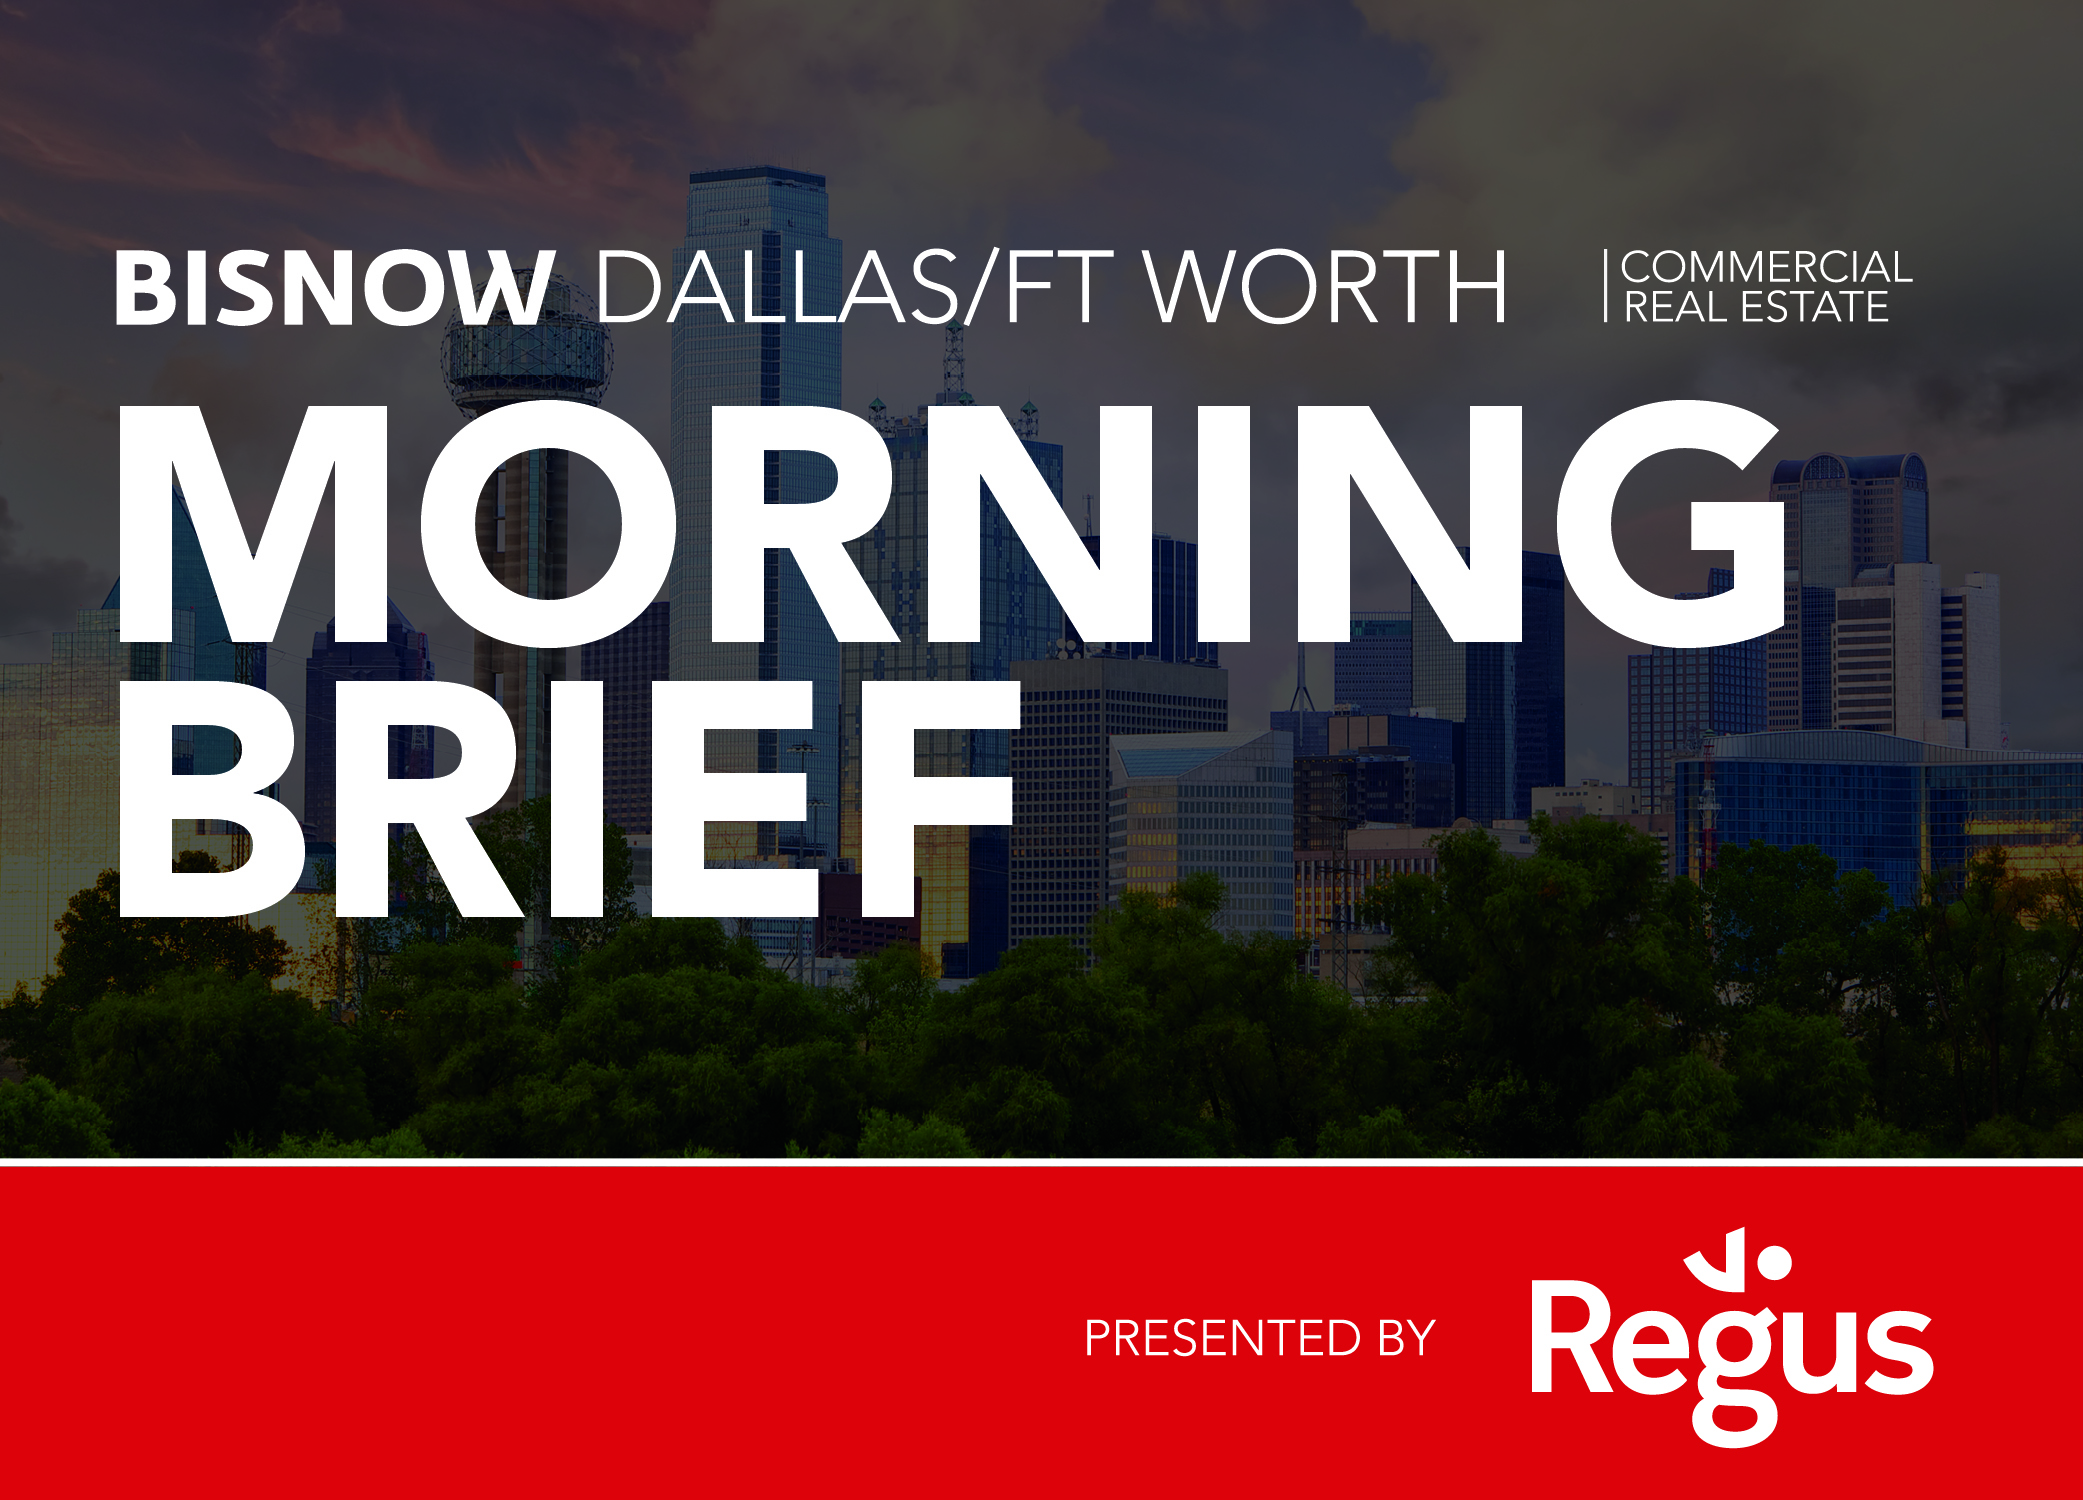 Bisnow Morning Brief DFW